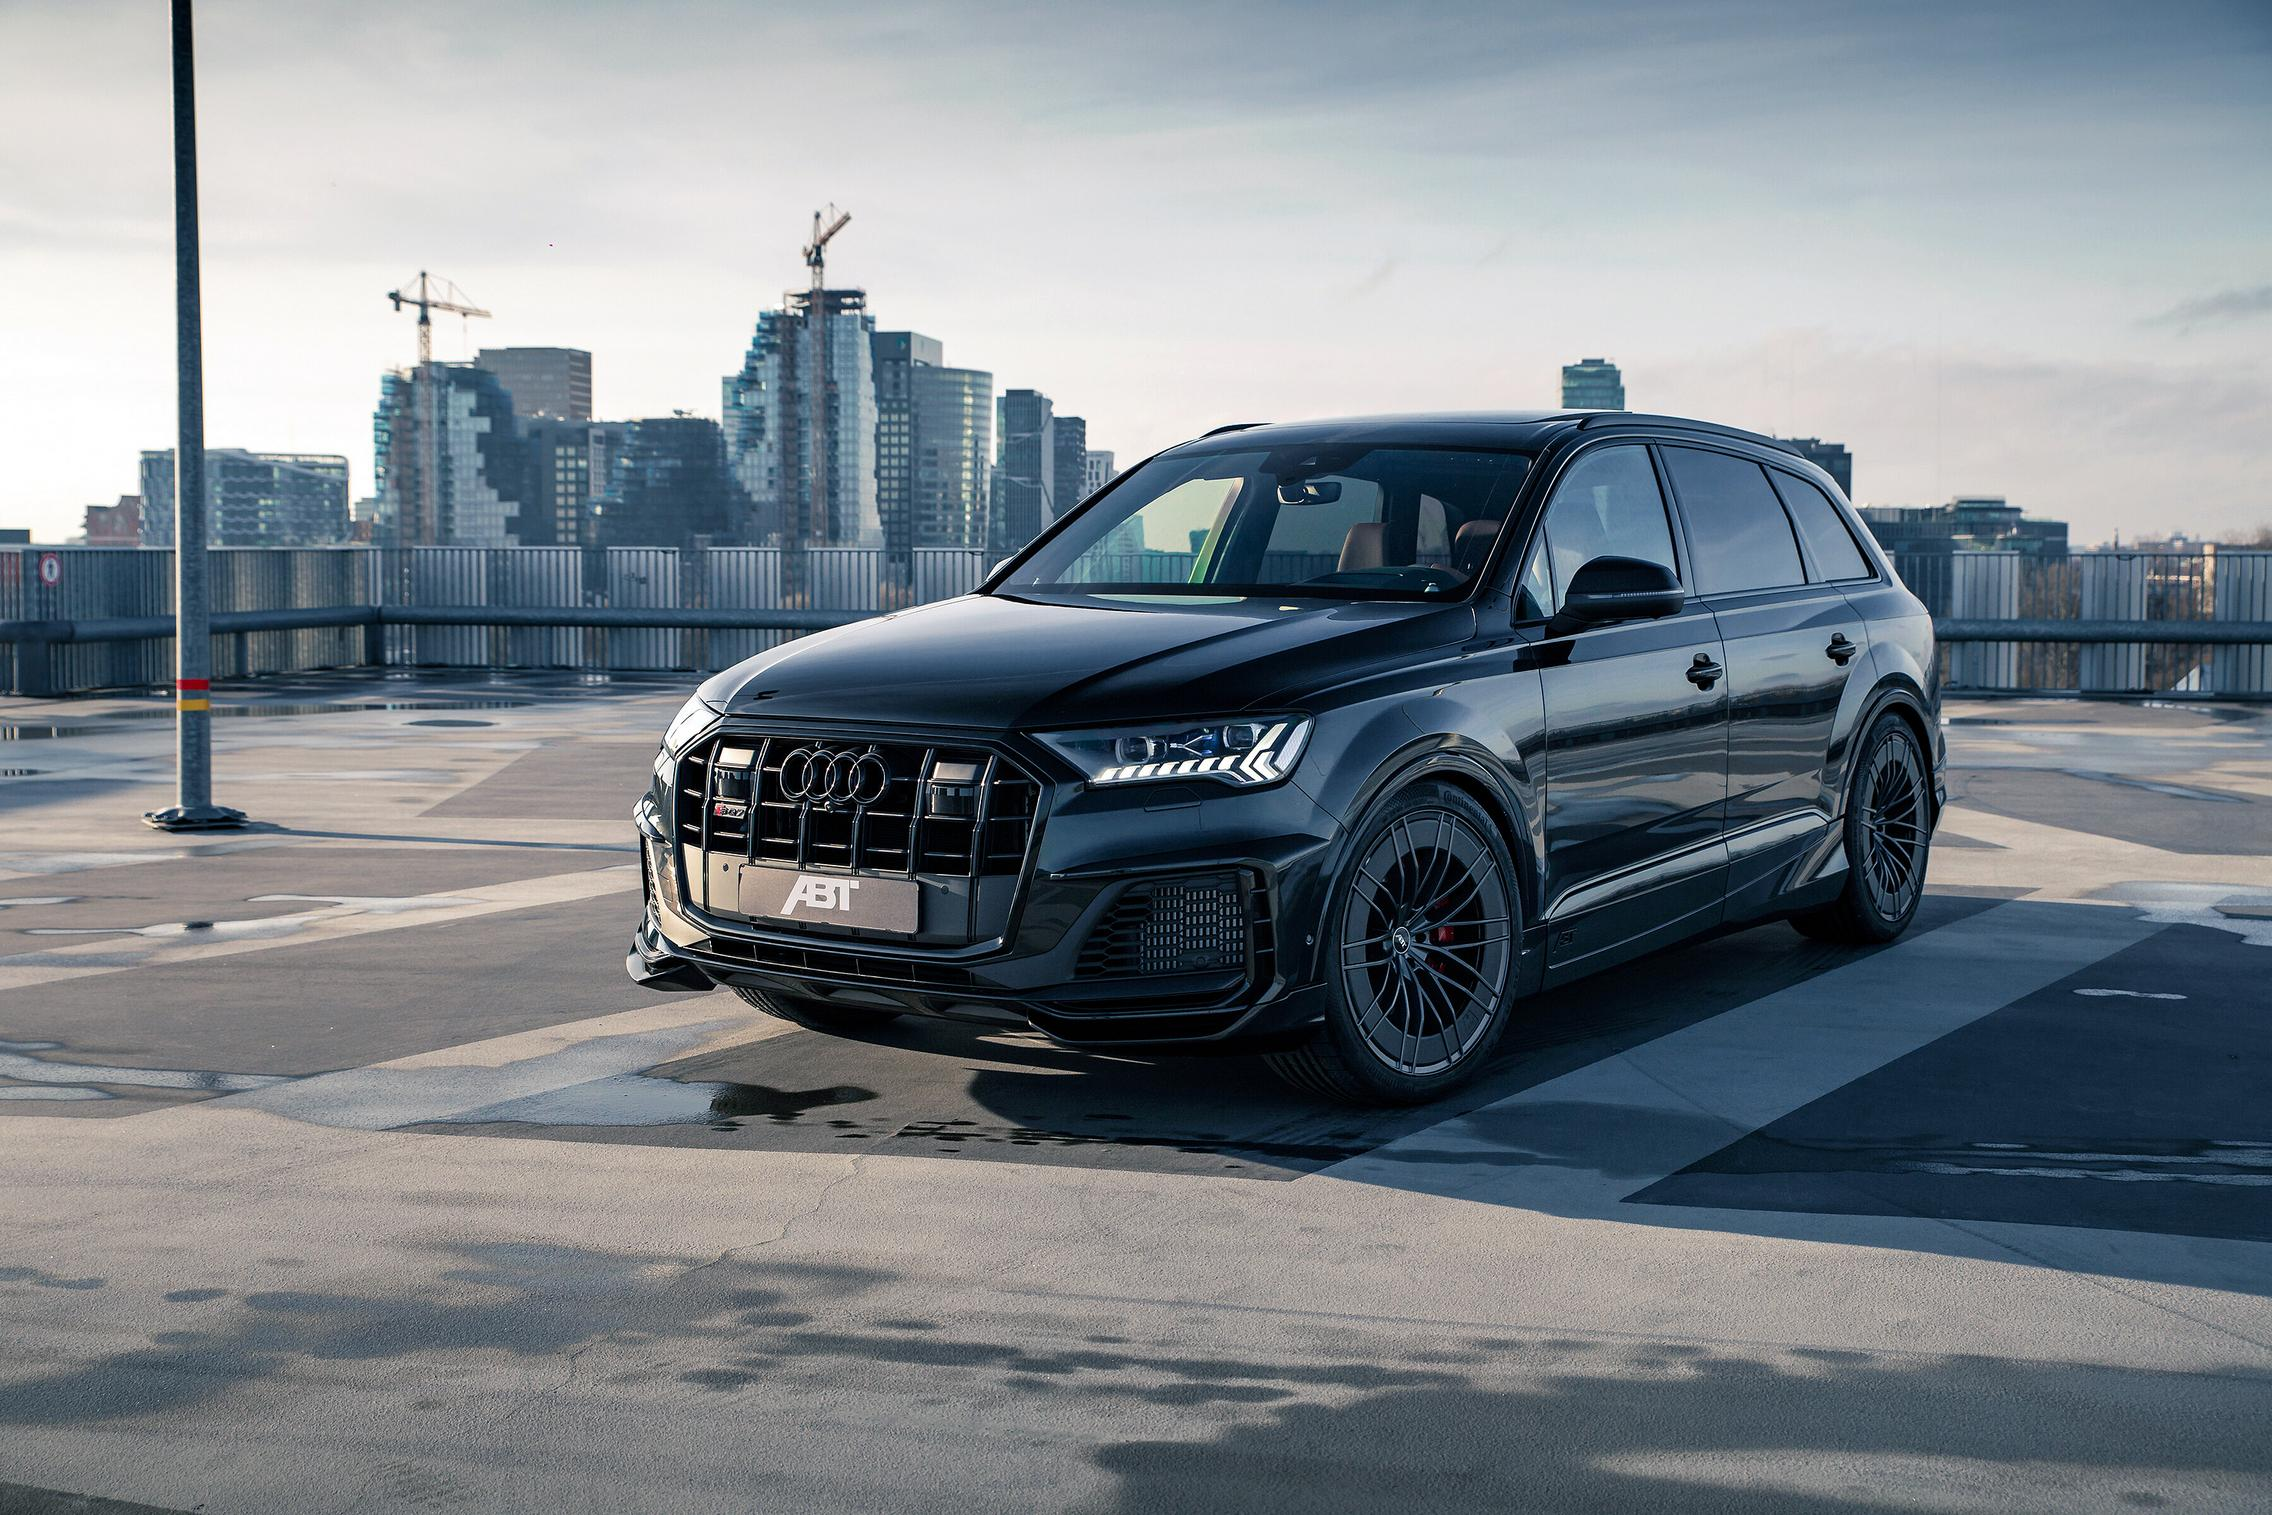 Audi-SQ7-ABT-wide-bodykit-2